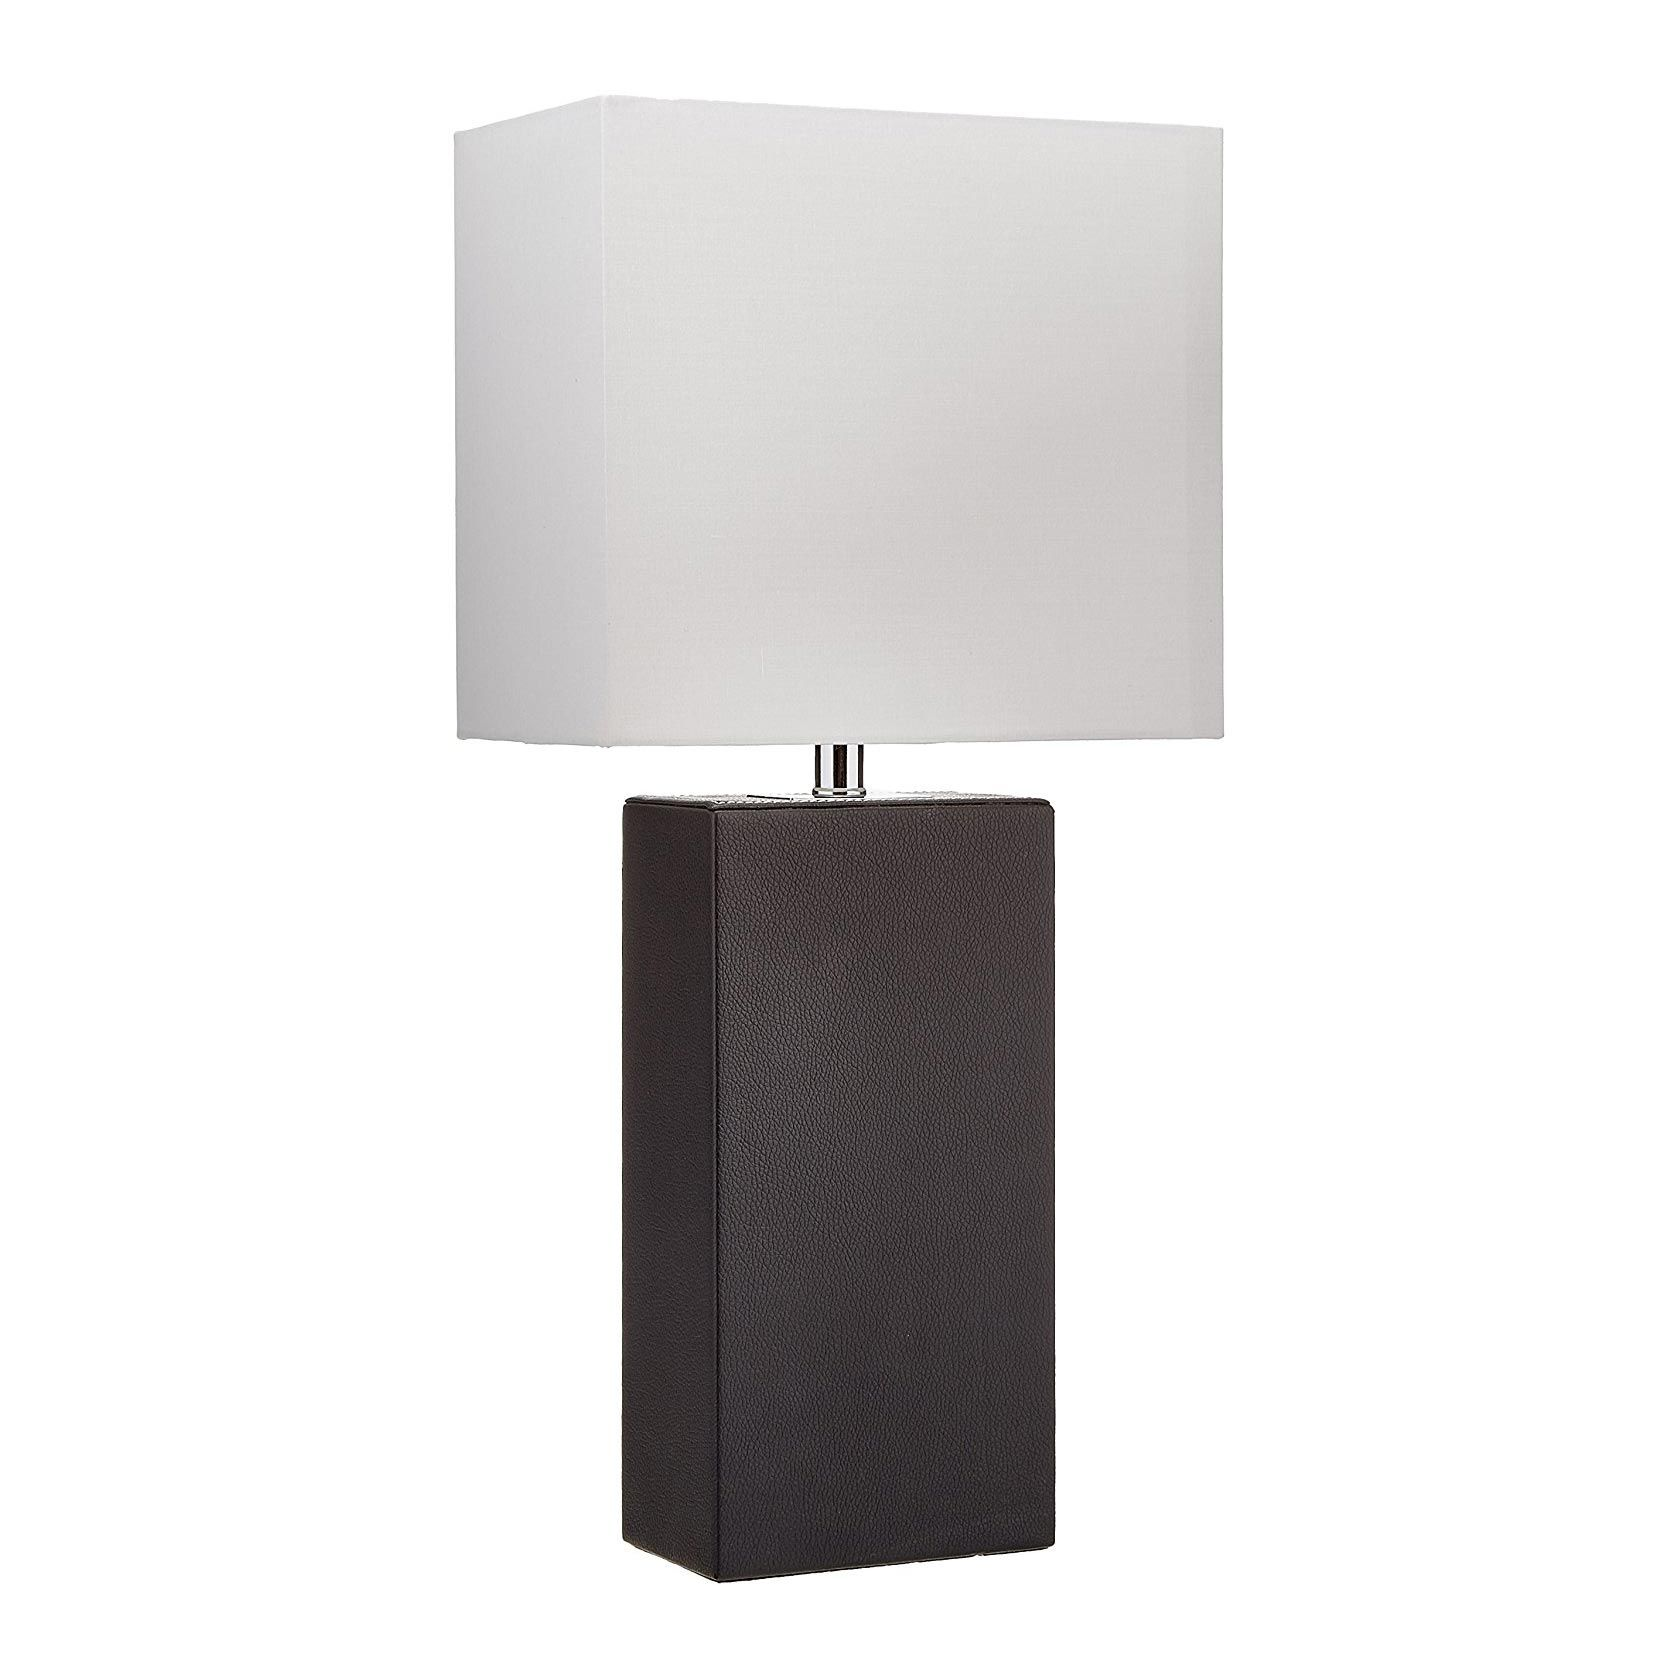 The Elegant Designs Modern Very Stylish Leather Lamp You Will Be